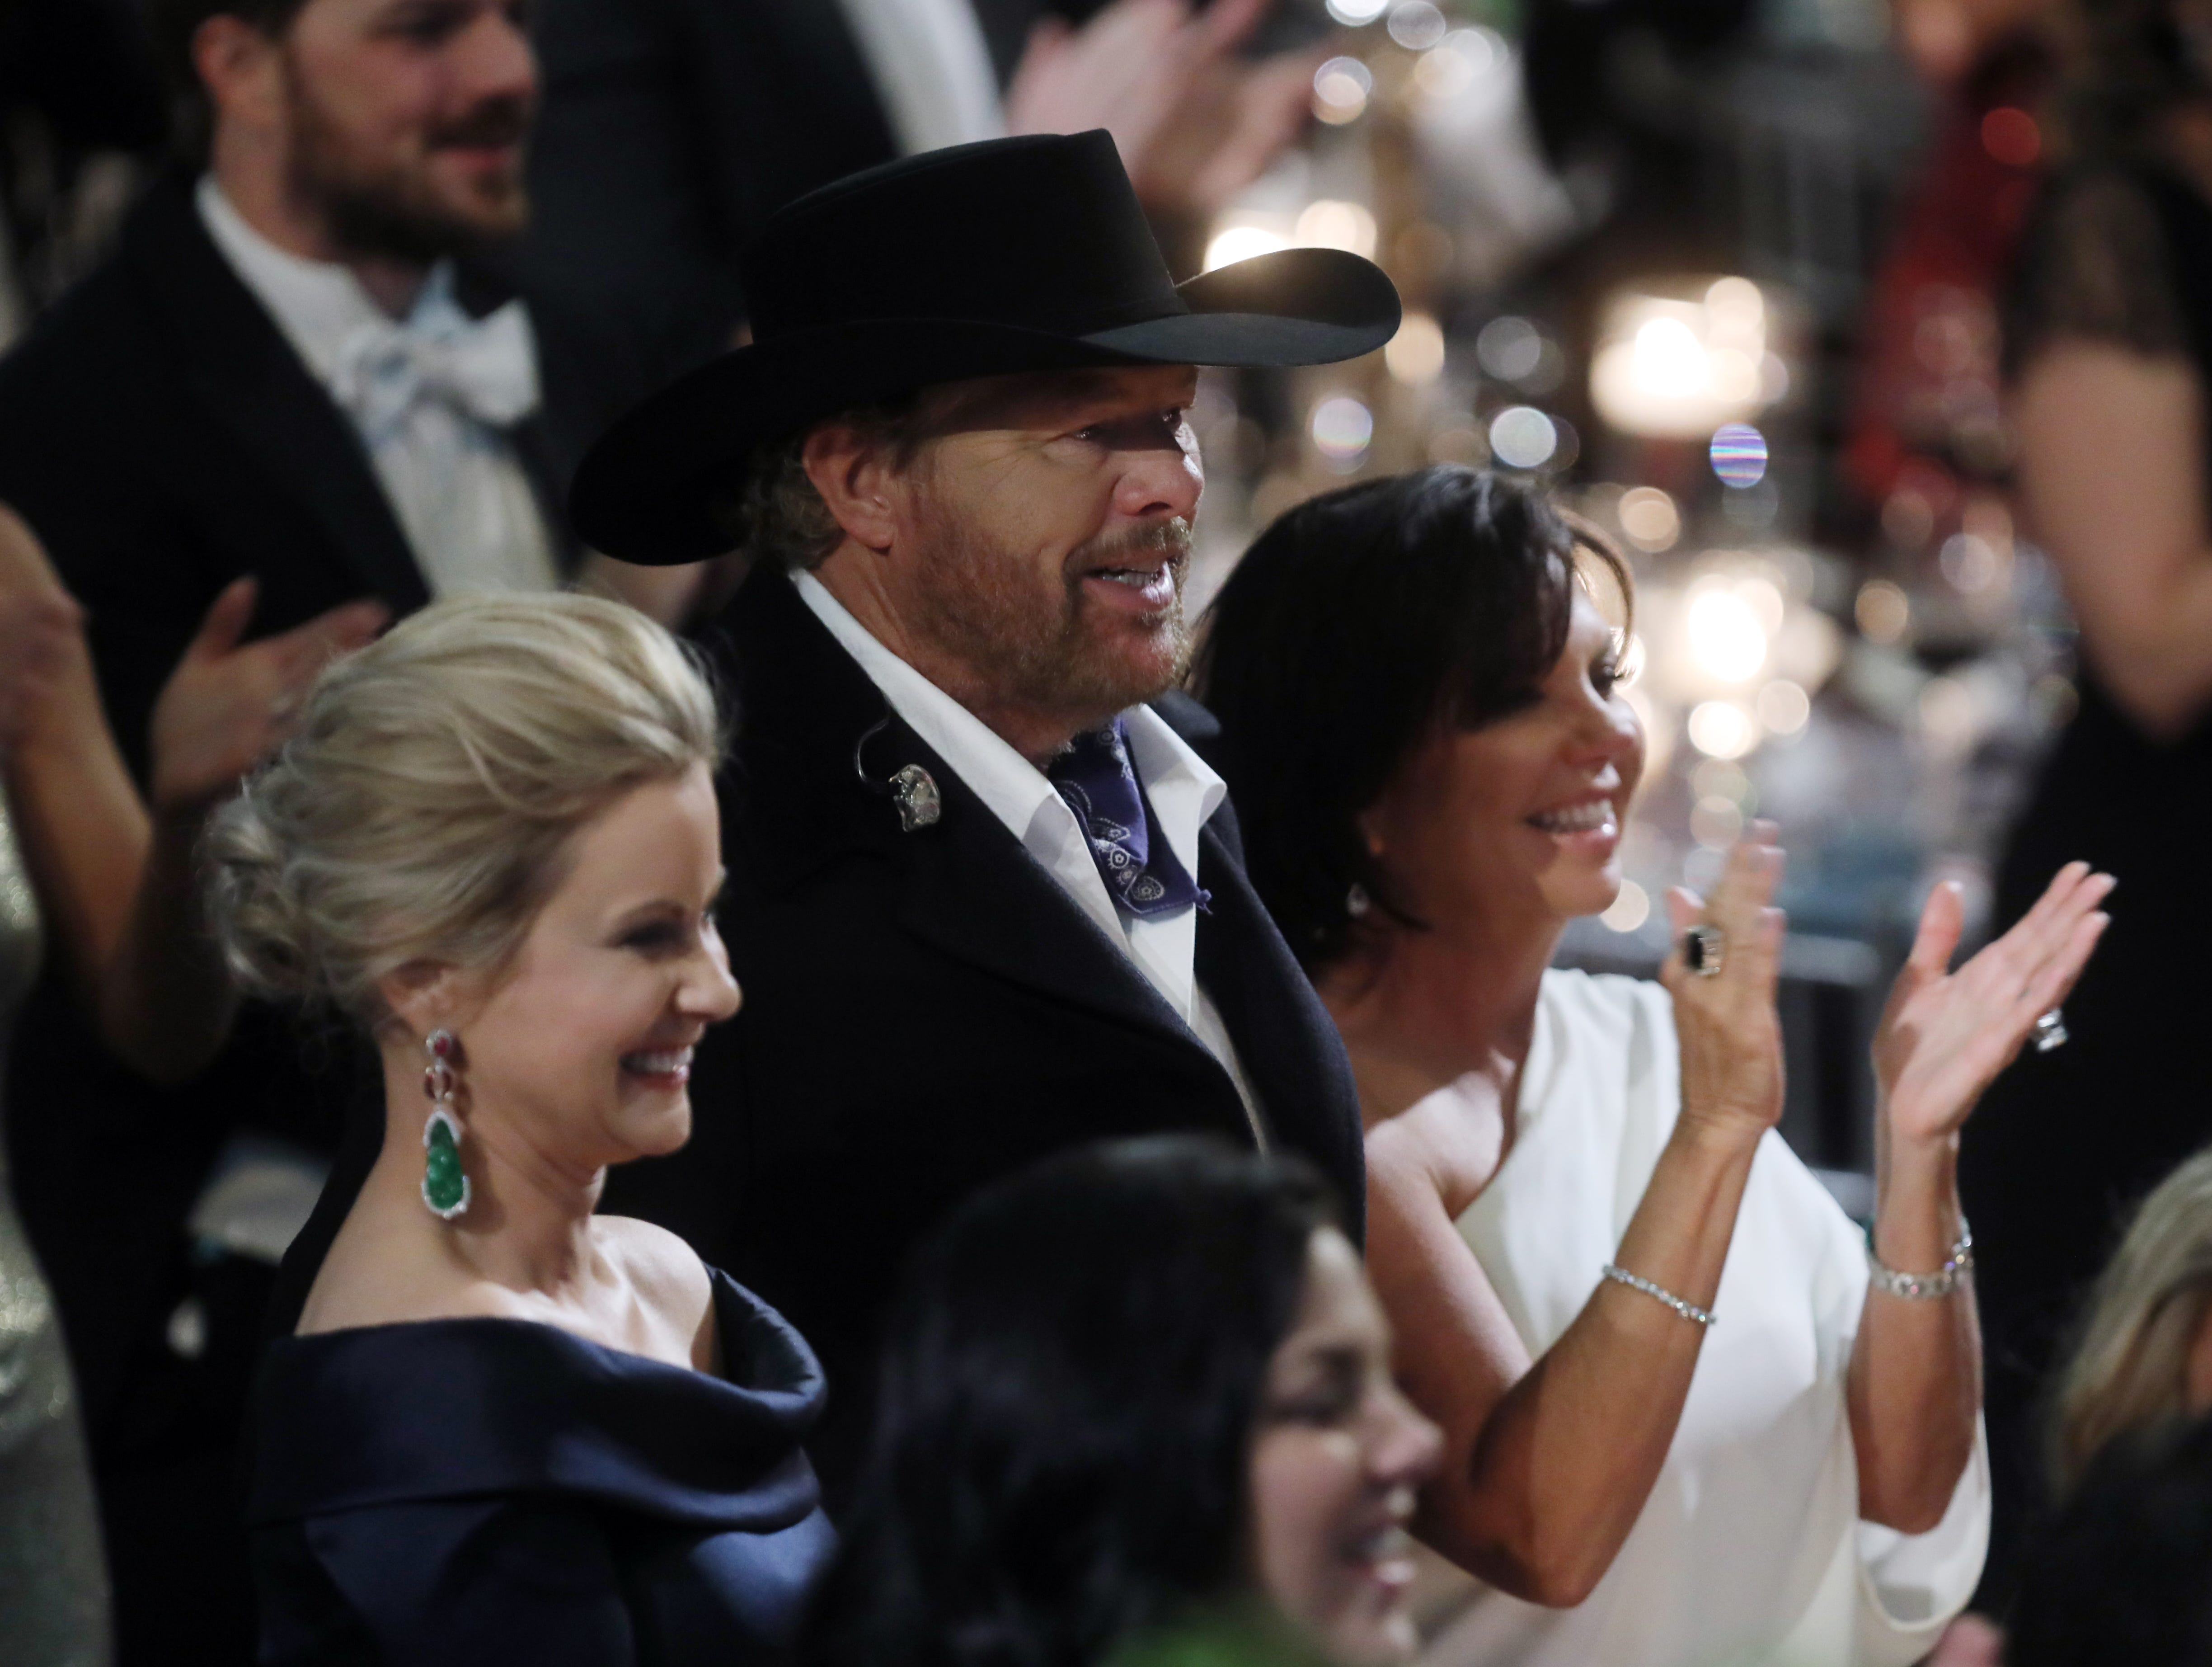 Laura Kimbrell, Toby Keith and Tricia Keith at the 34th annual Symphony Ball on Saturday, December 8, 2018, at Schermerhorn Symphony Center.